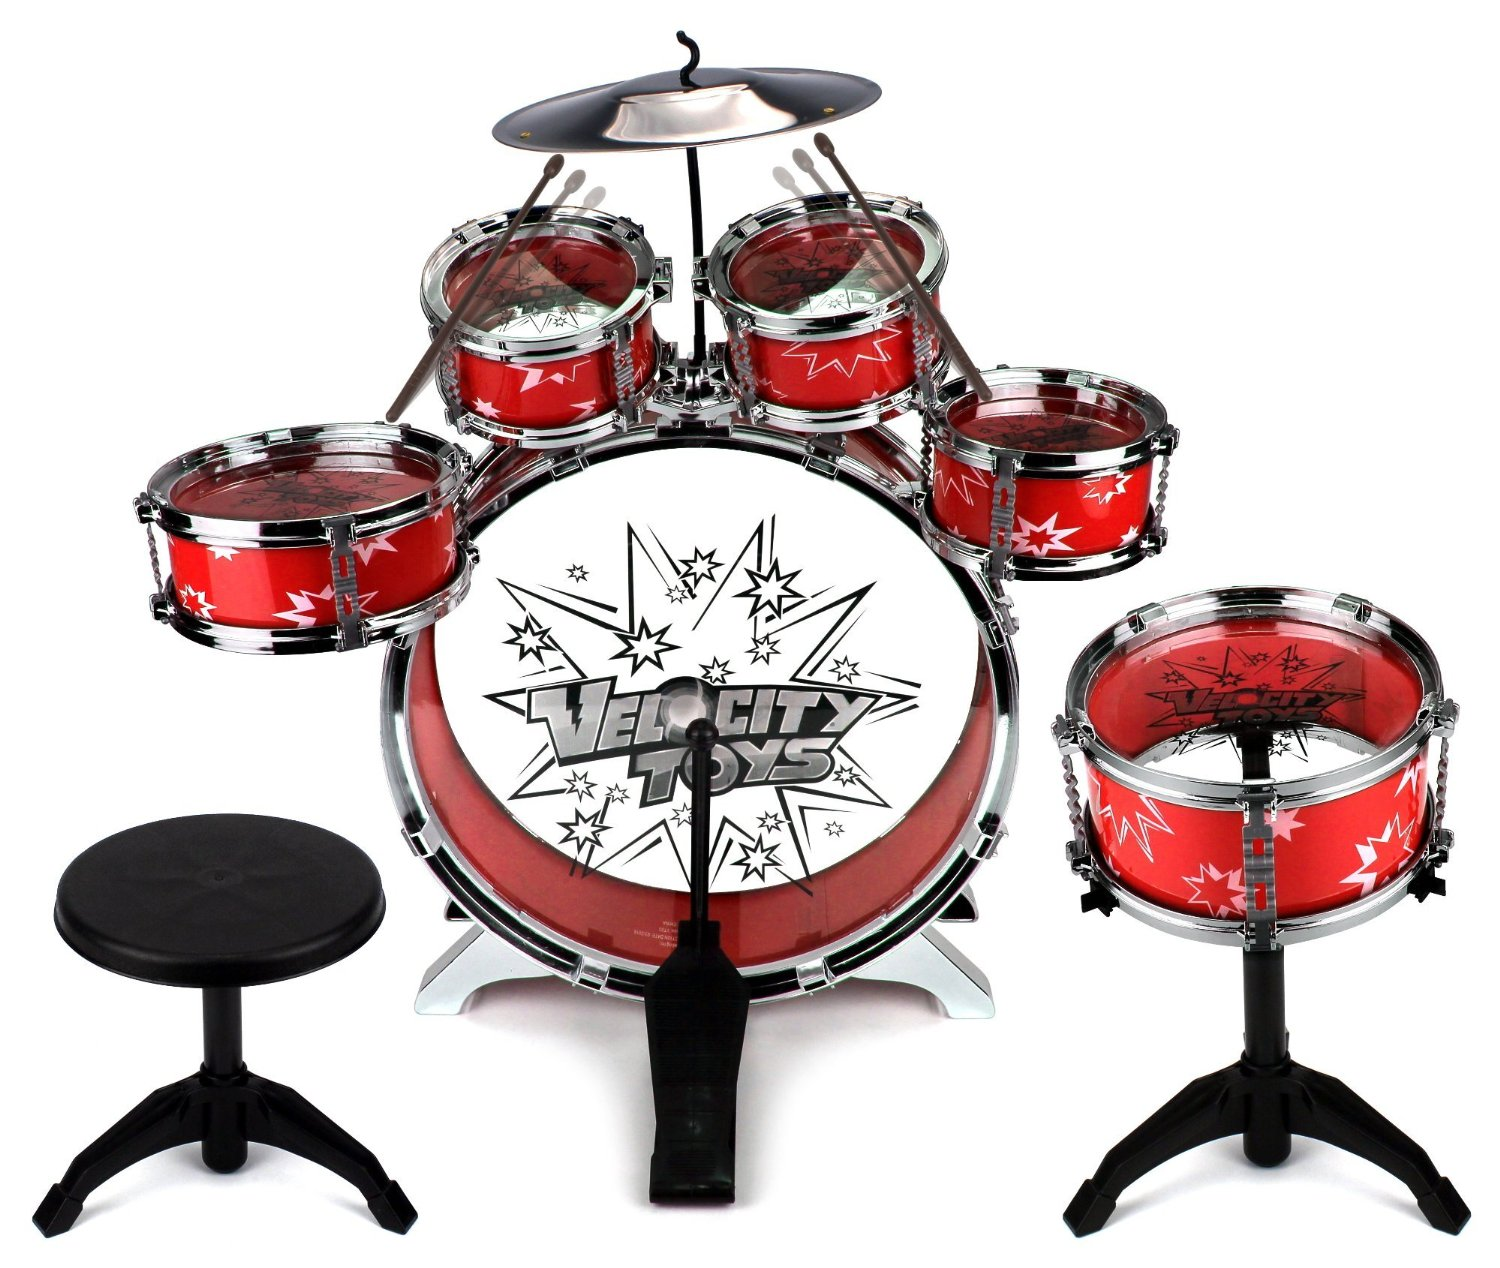 Toy Drum Set For Children 11 Piece Kids Musical Instrument Playset W 6 Drums Cymbal Chair Kick Pedal Drumsticks